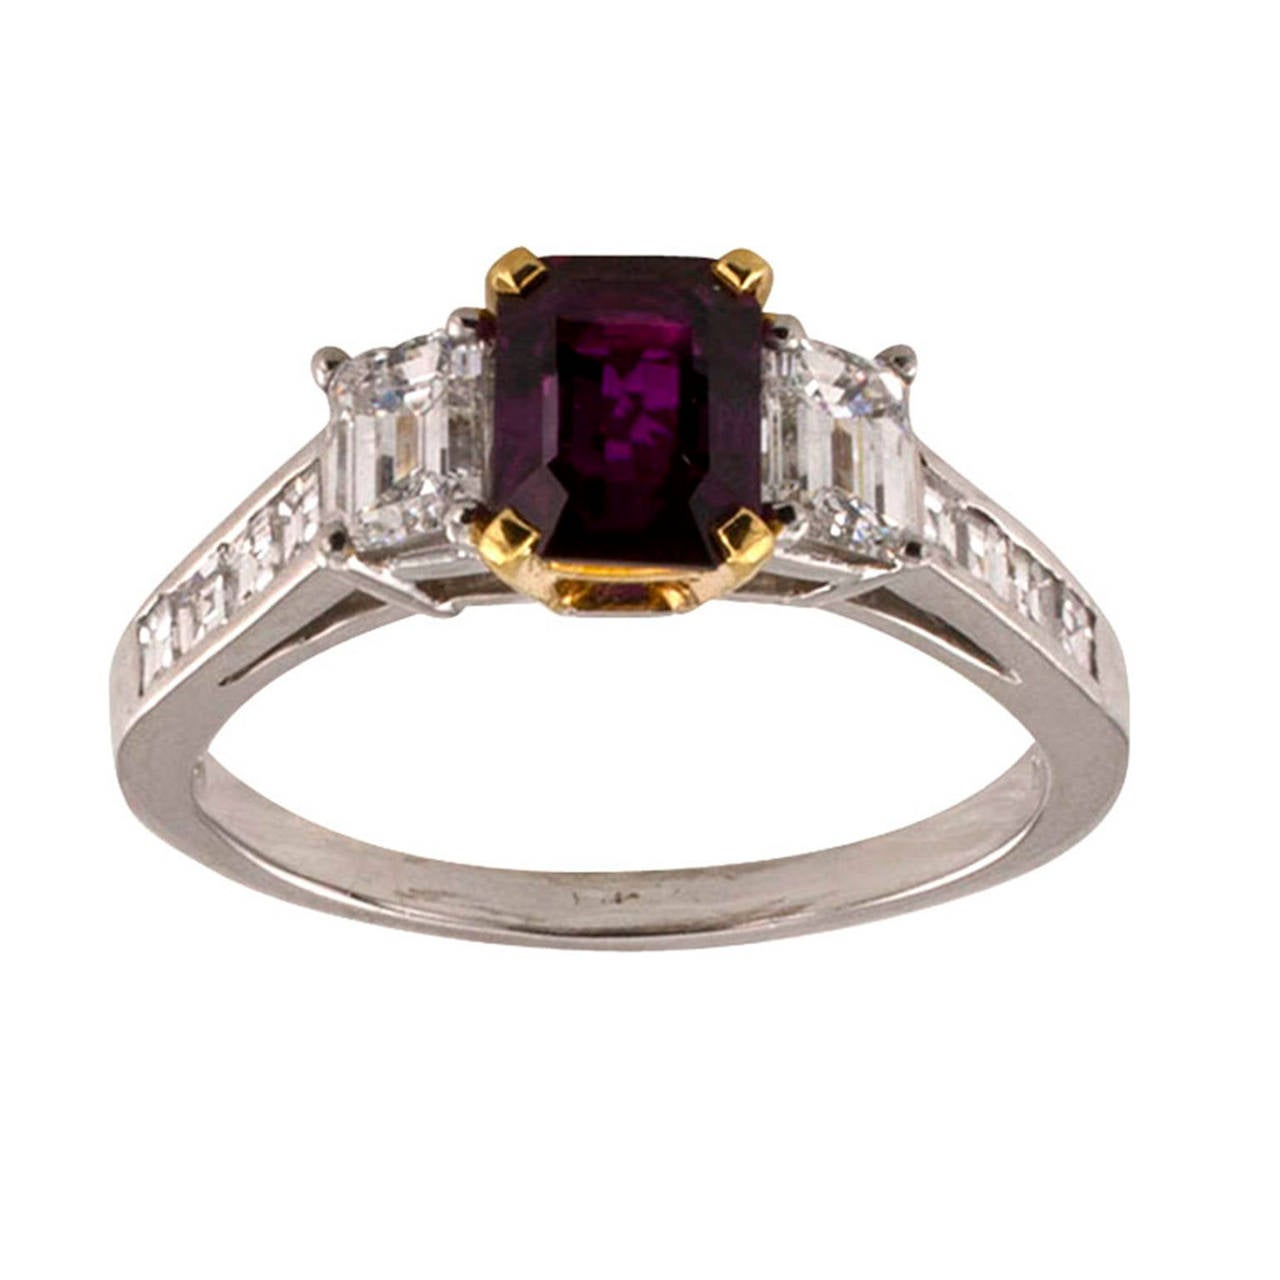 1.25 Carats Ruby and Diamond Ring